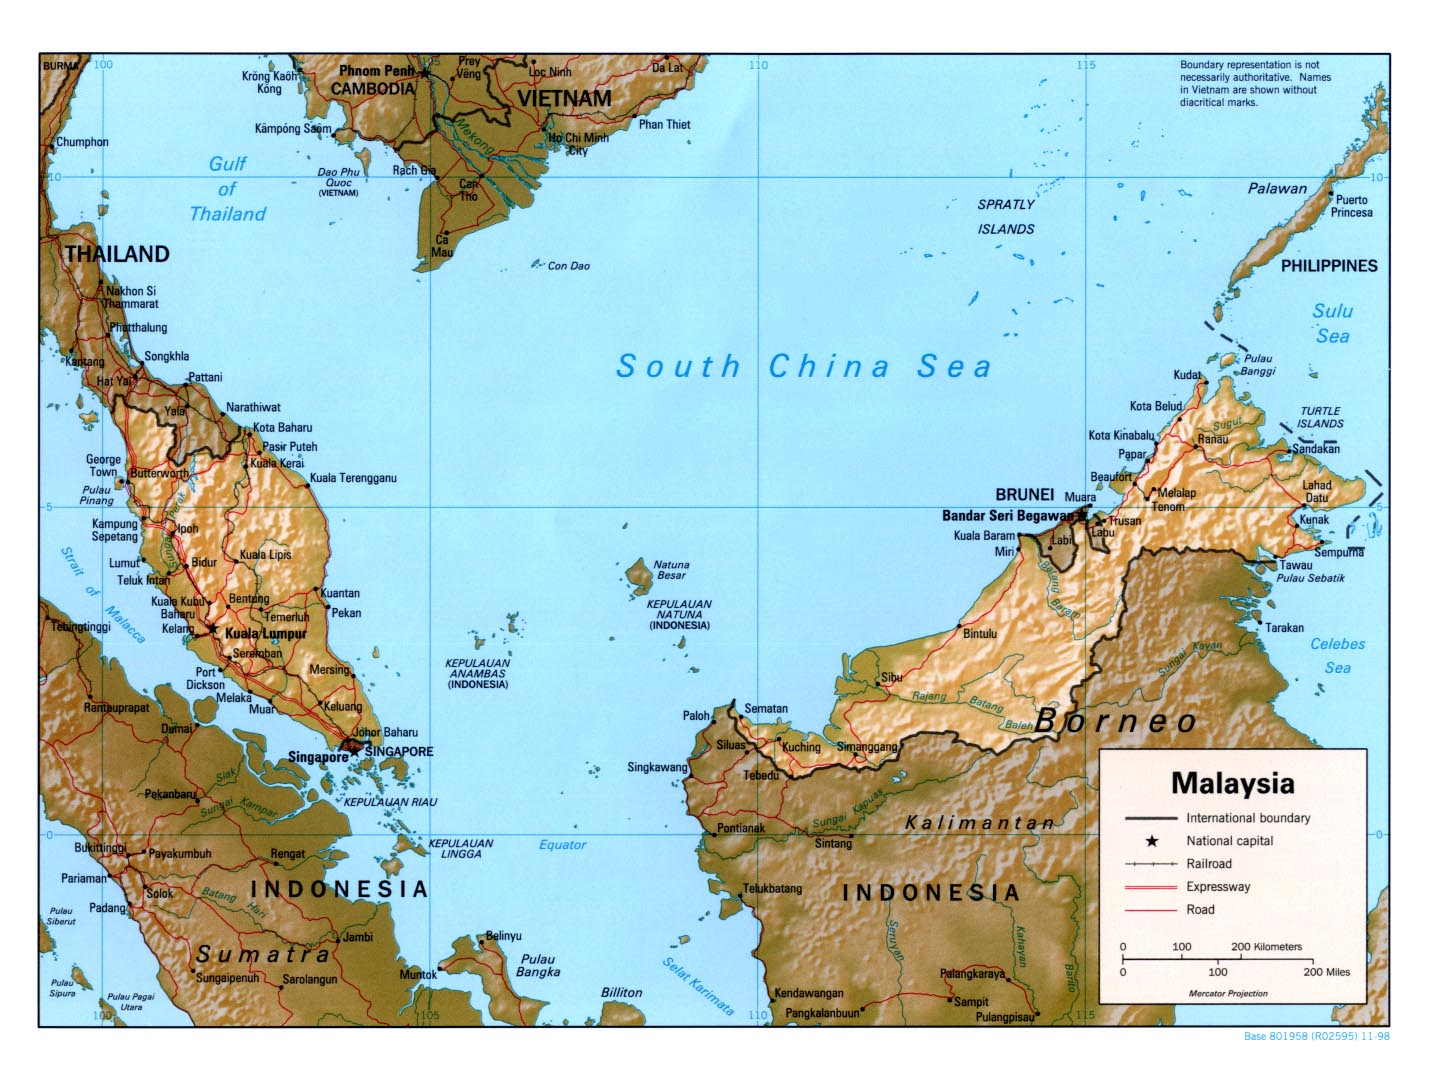 Malaysia Map (Courtesy of University of Texas Library)